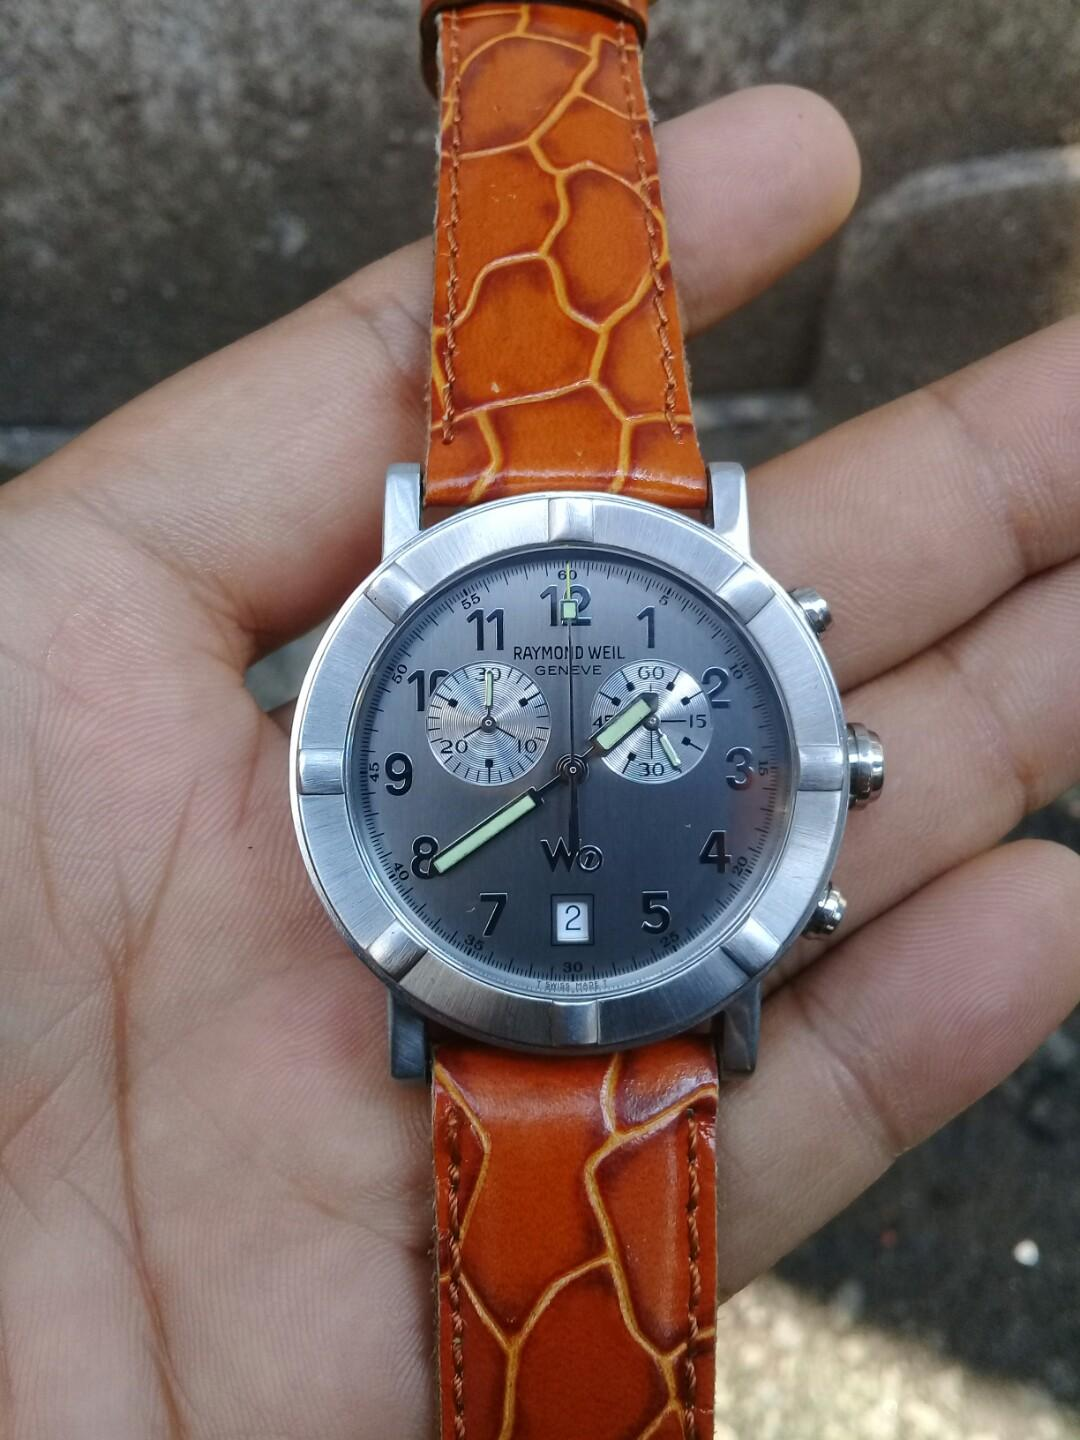 Raymond Weil W1 Parcifal Chronograph Swiss Made AUTHENTIC Men's Luxury